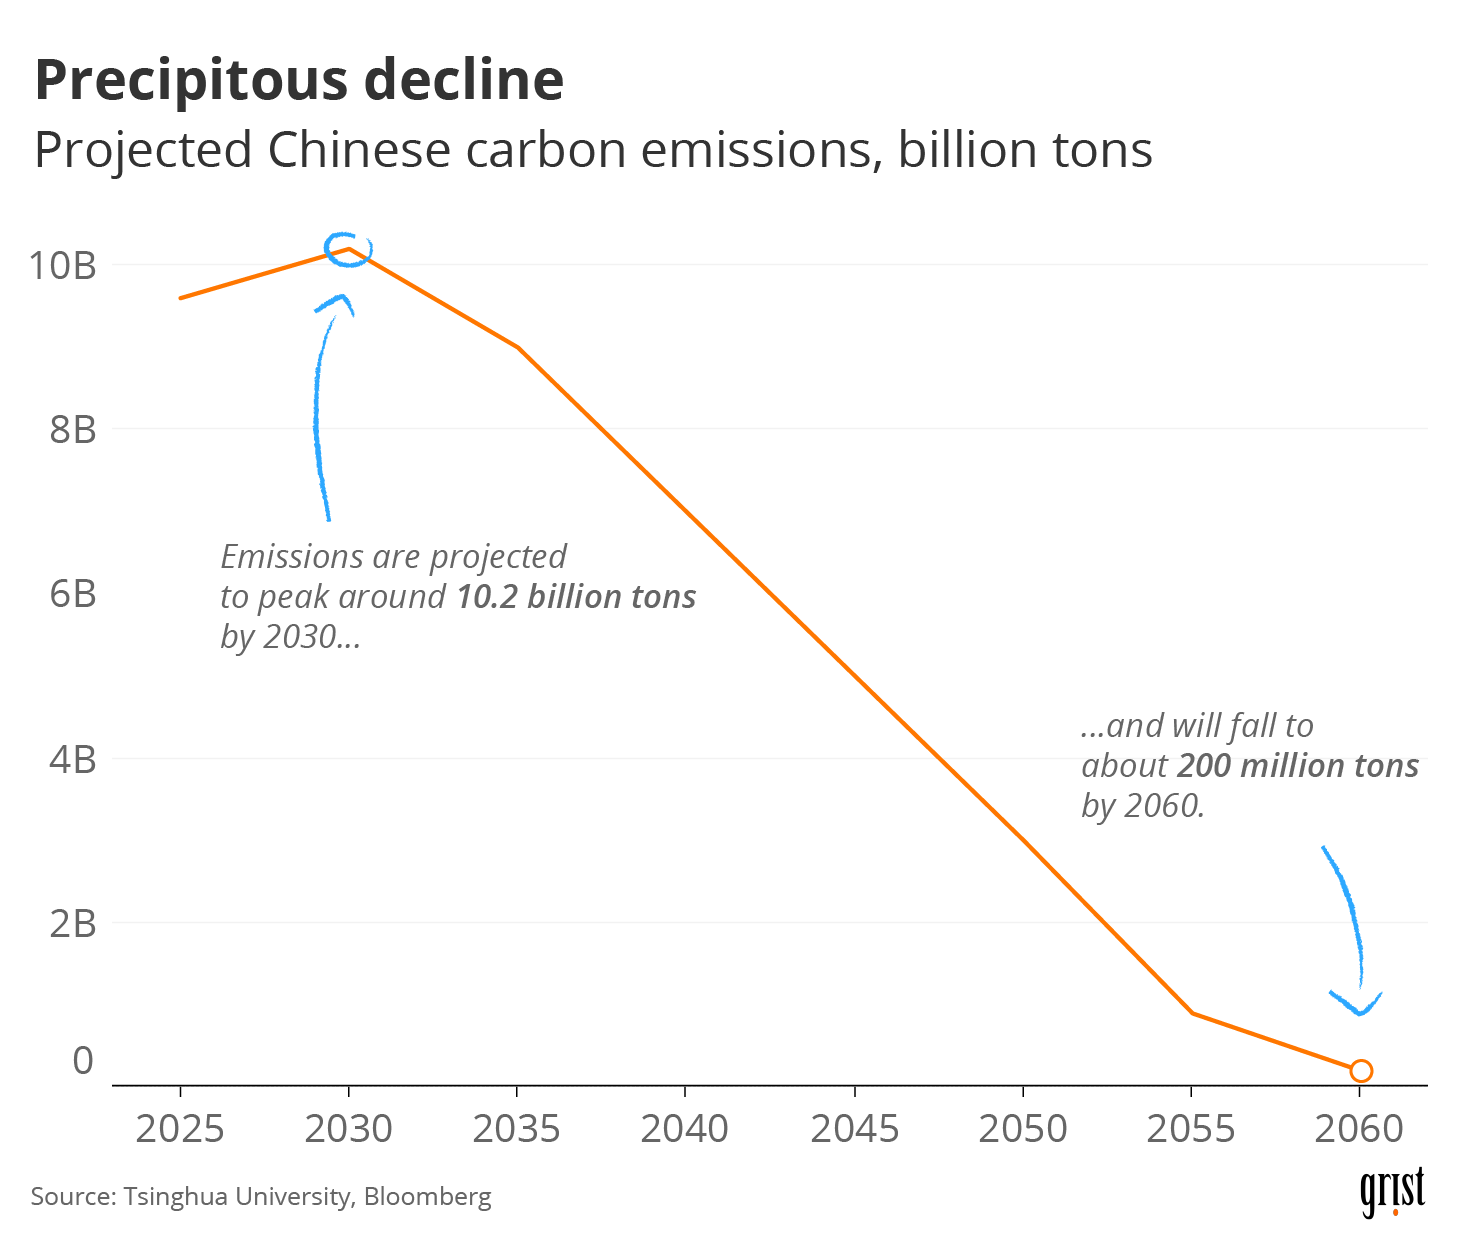 A line chart showing declining Chinese carbon emissions through 2060. China predicts their emissions to peak by 2030 (around 10.2 billion tons) and drop to about 200 million tons by 2060.